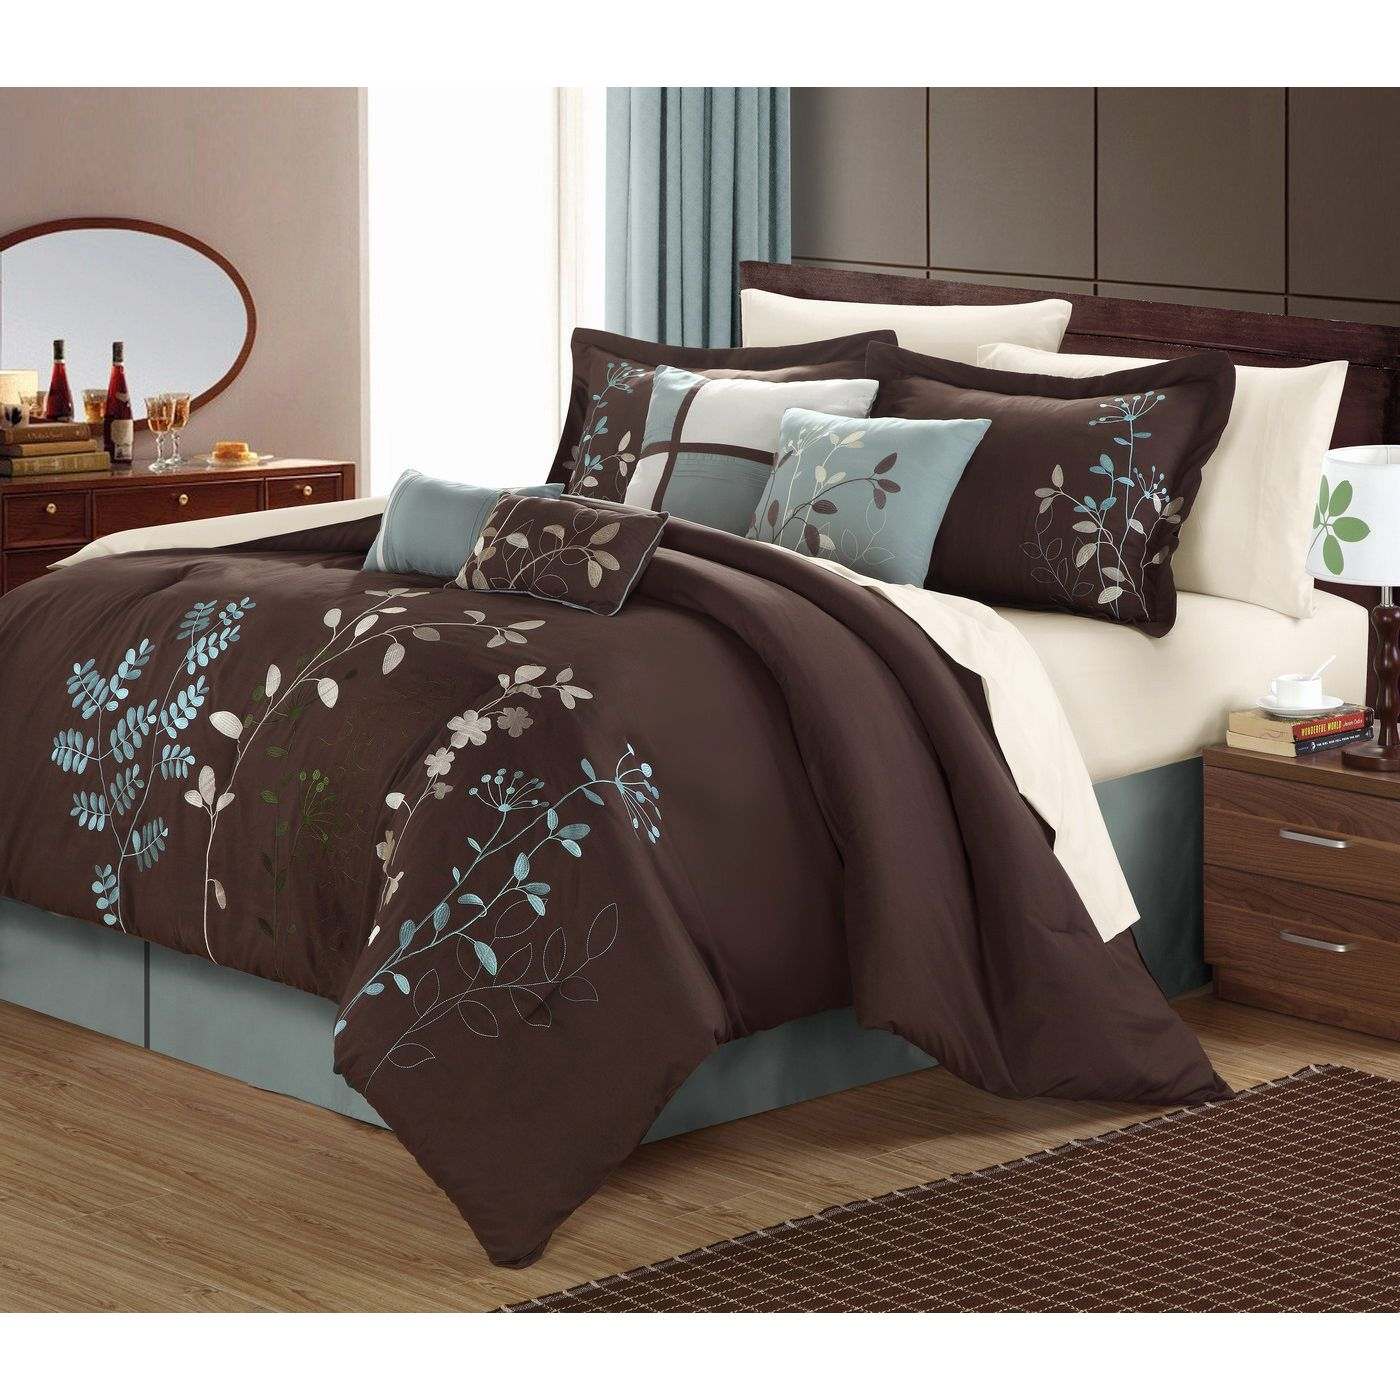 Transform Of Bedroom With Contemporary